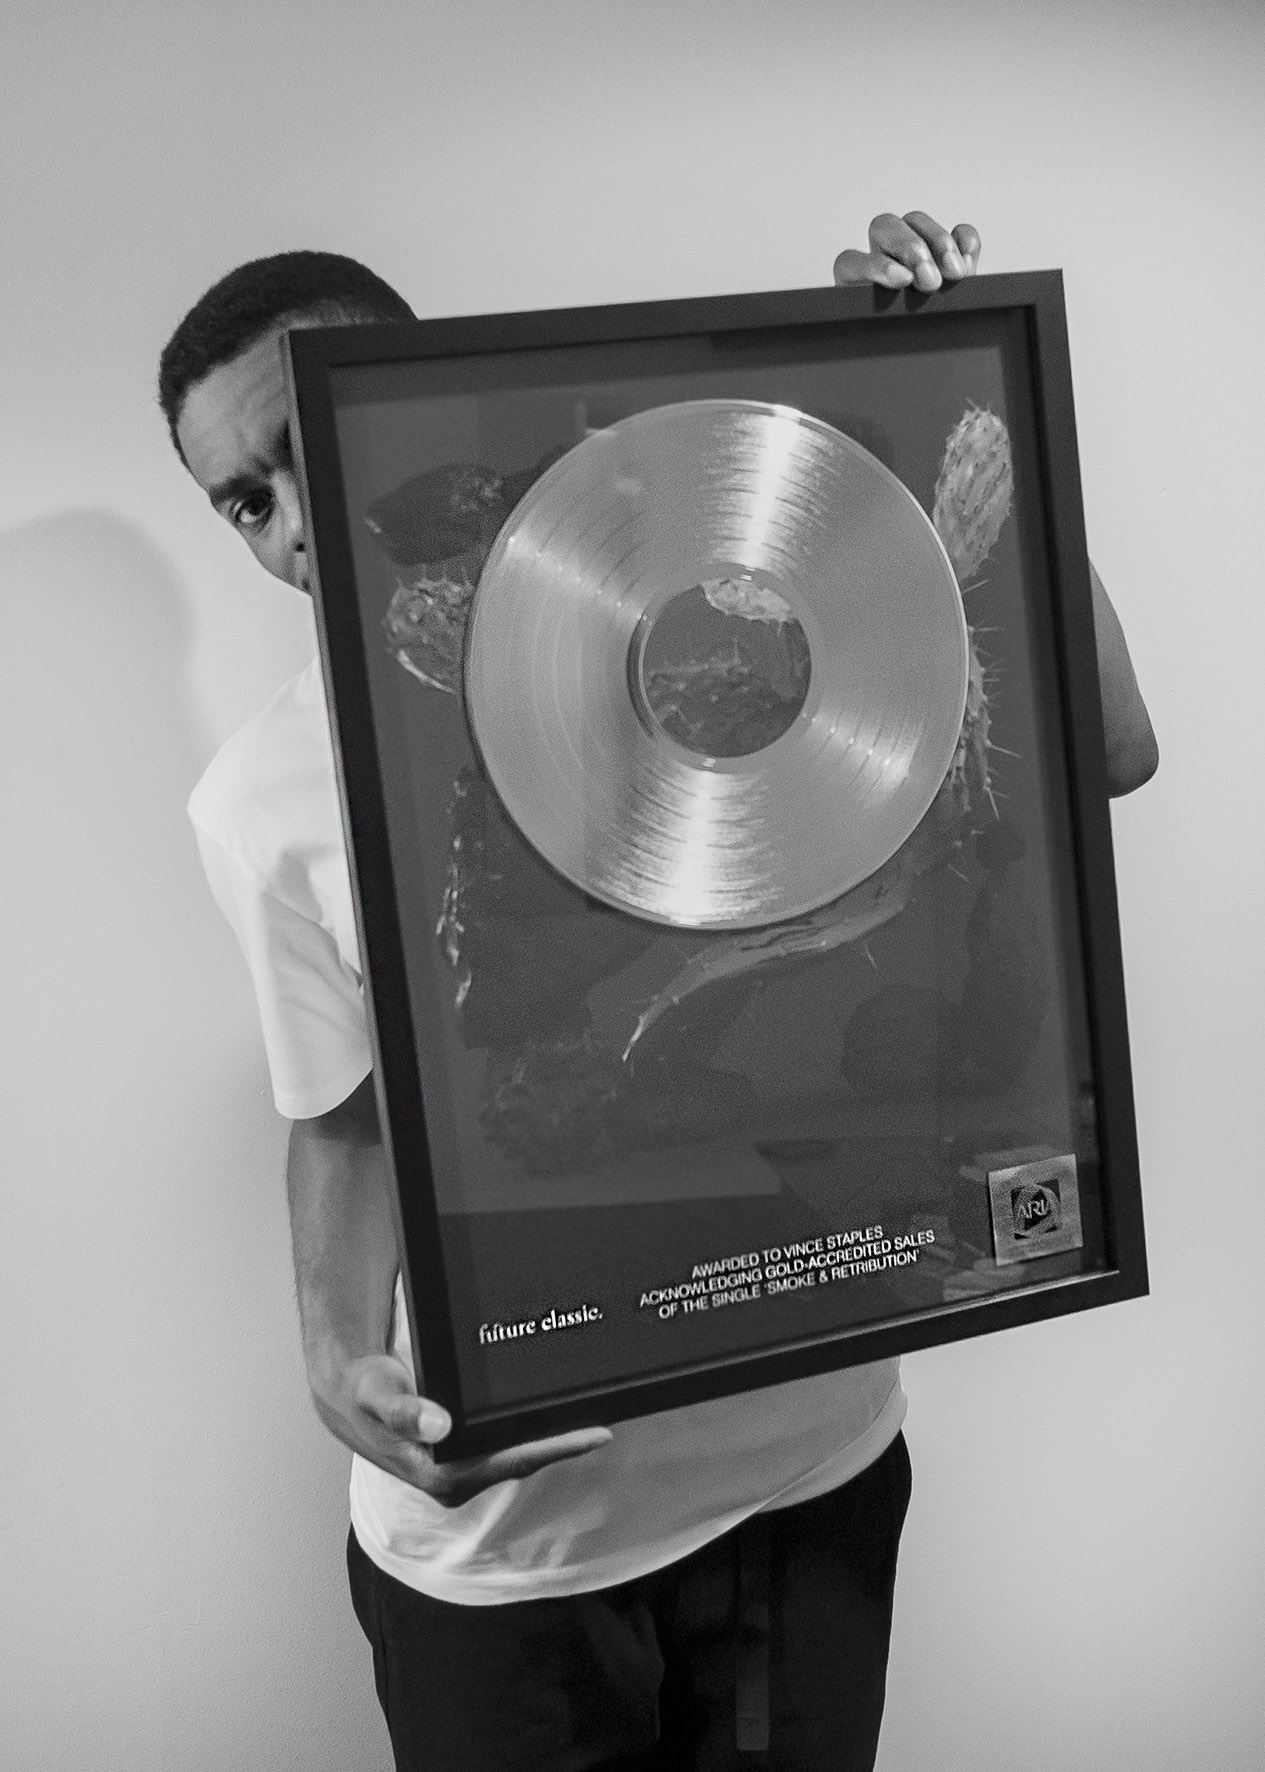 Vince Staples goes platinum